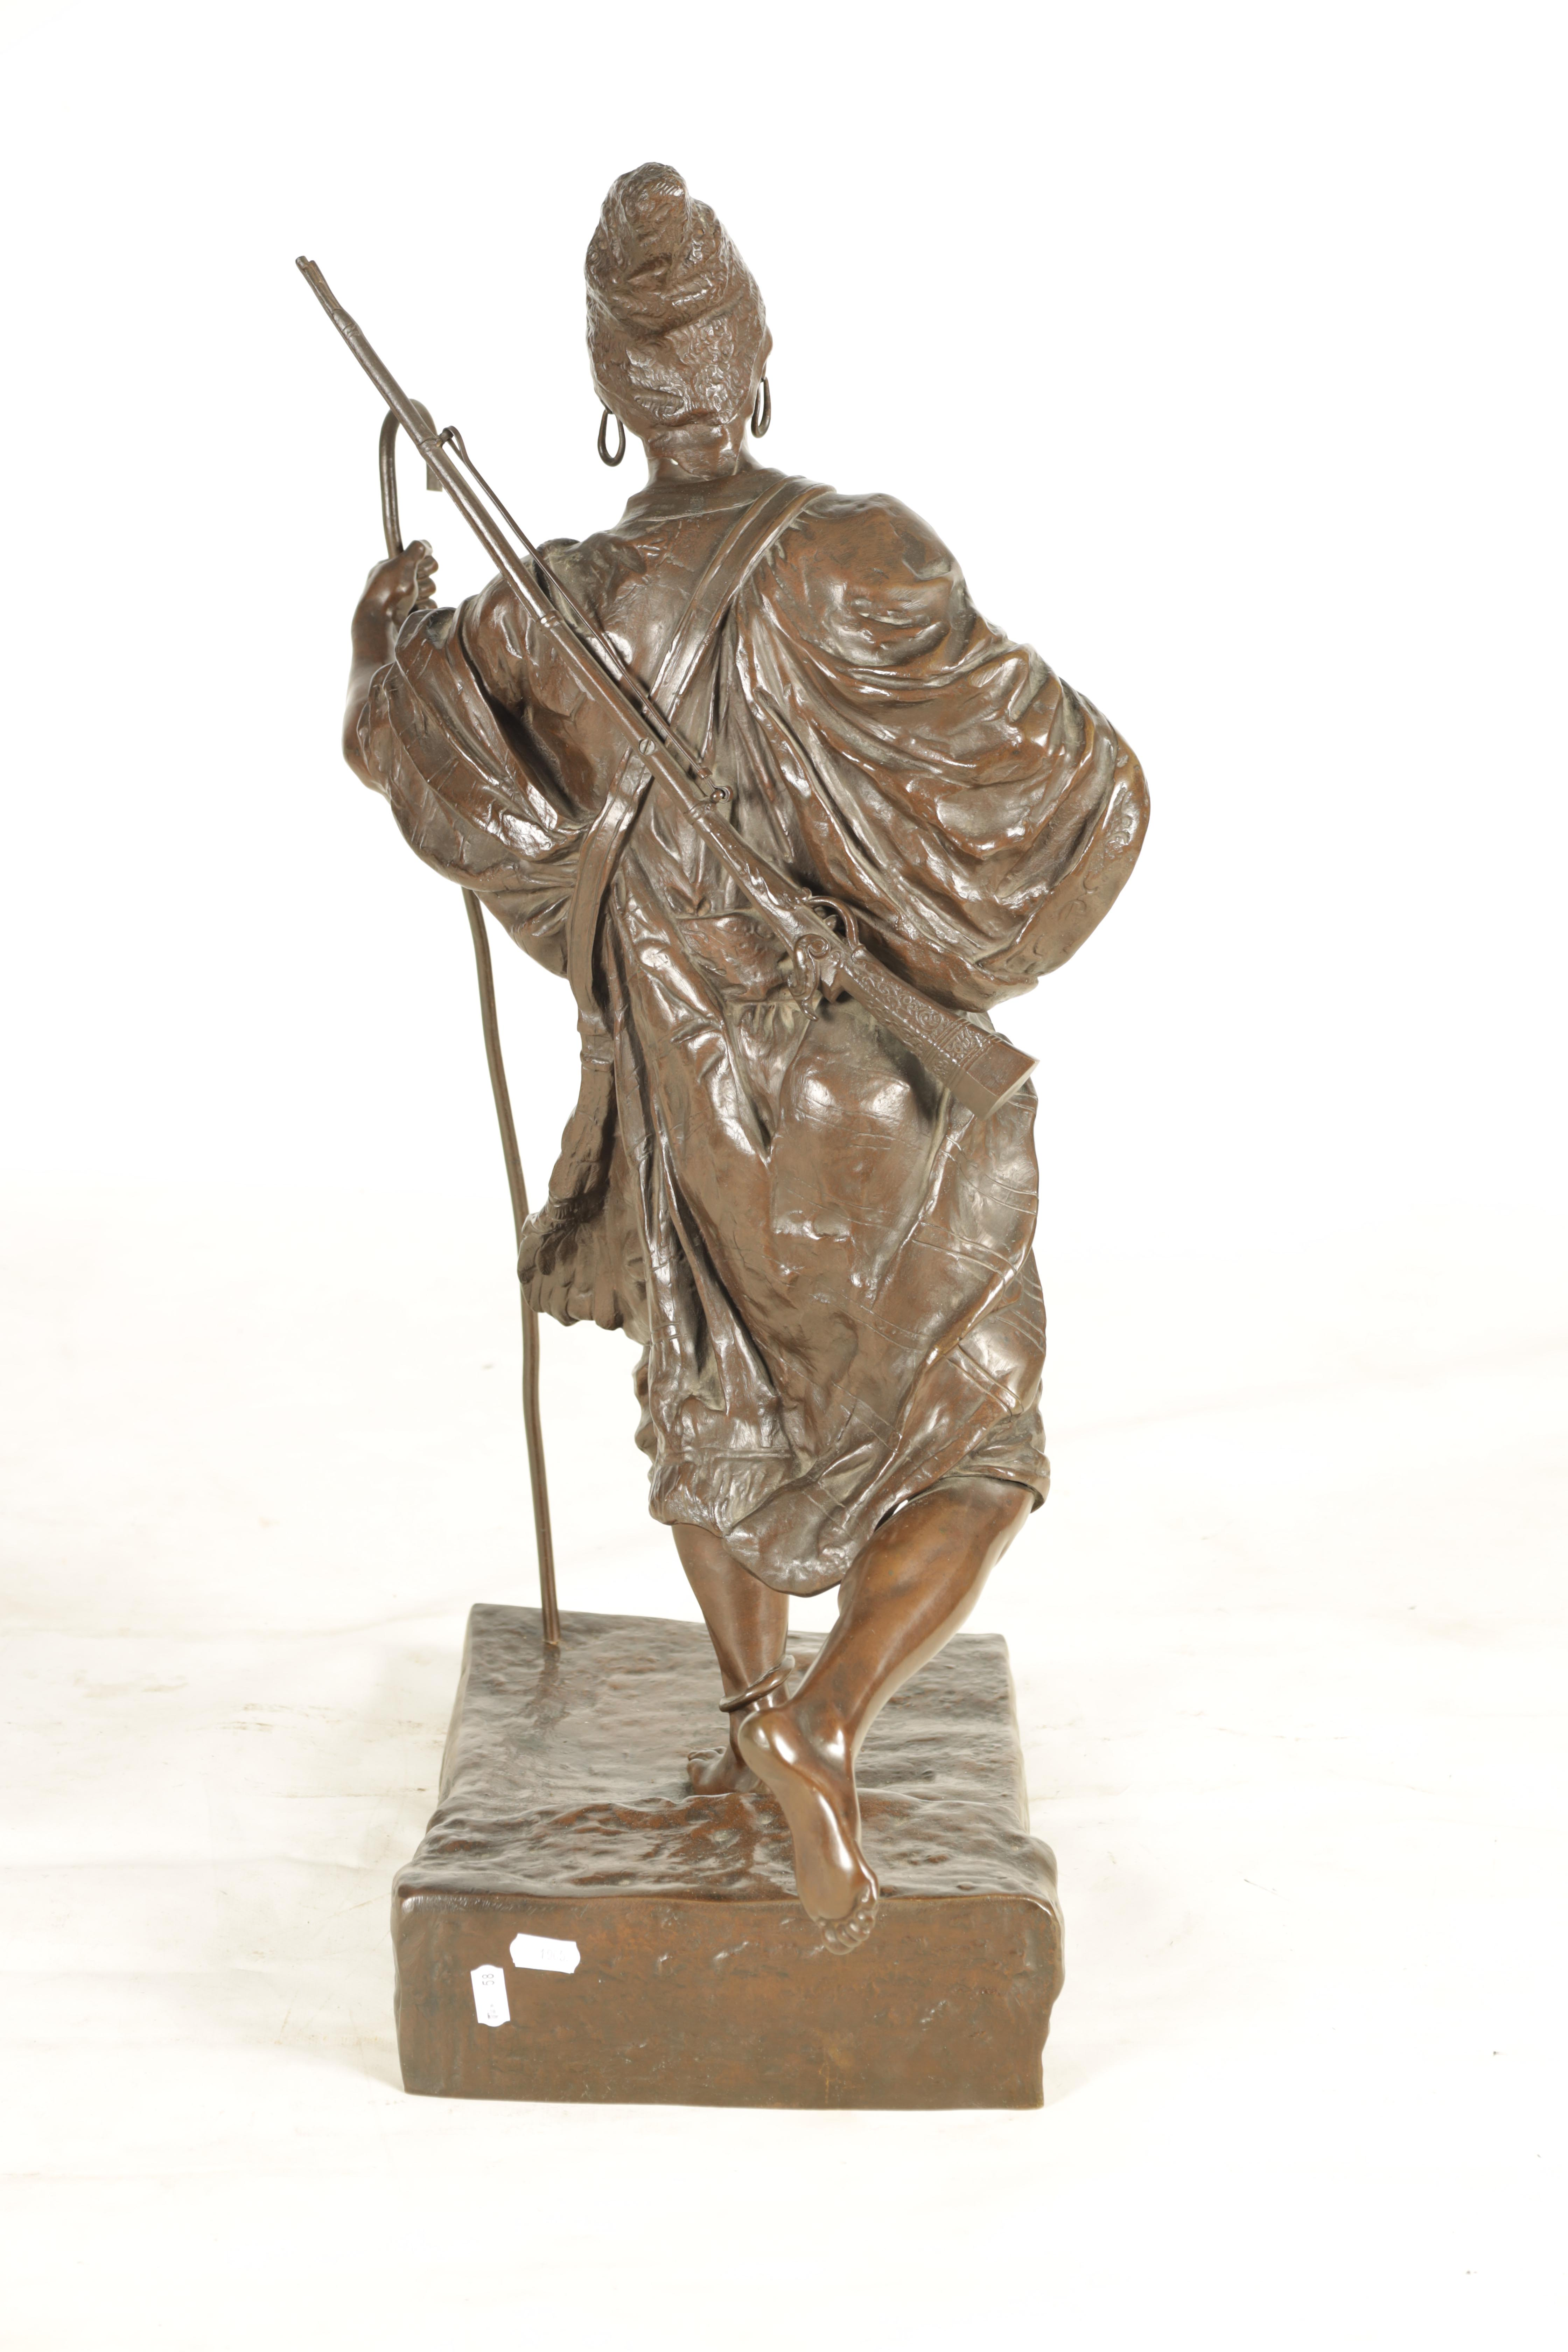 A 19TH CENTURY FRENCH FIGURAL BRONZE depicting an Eastern male figure walking with shepherds crook - Image 5 of 5